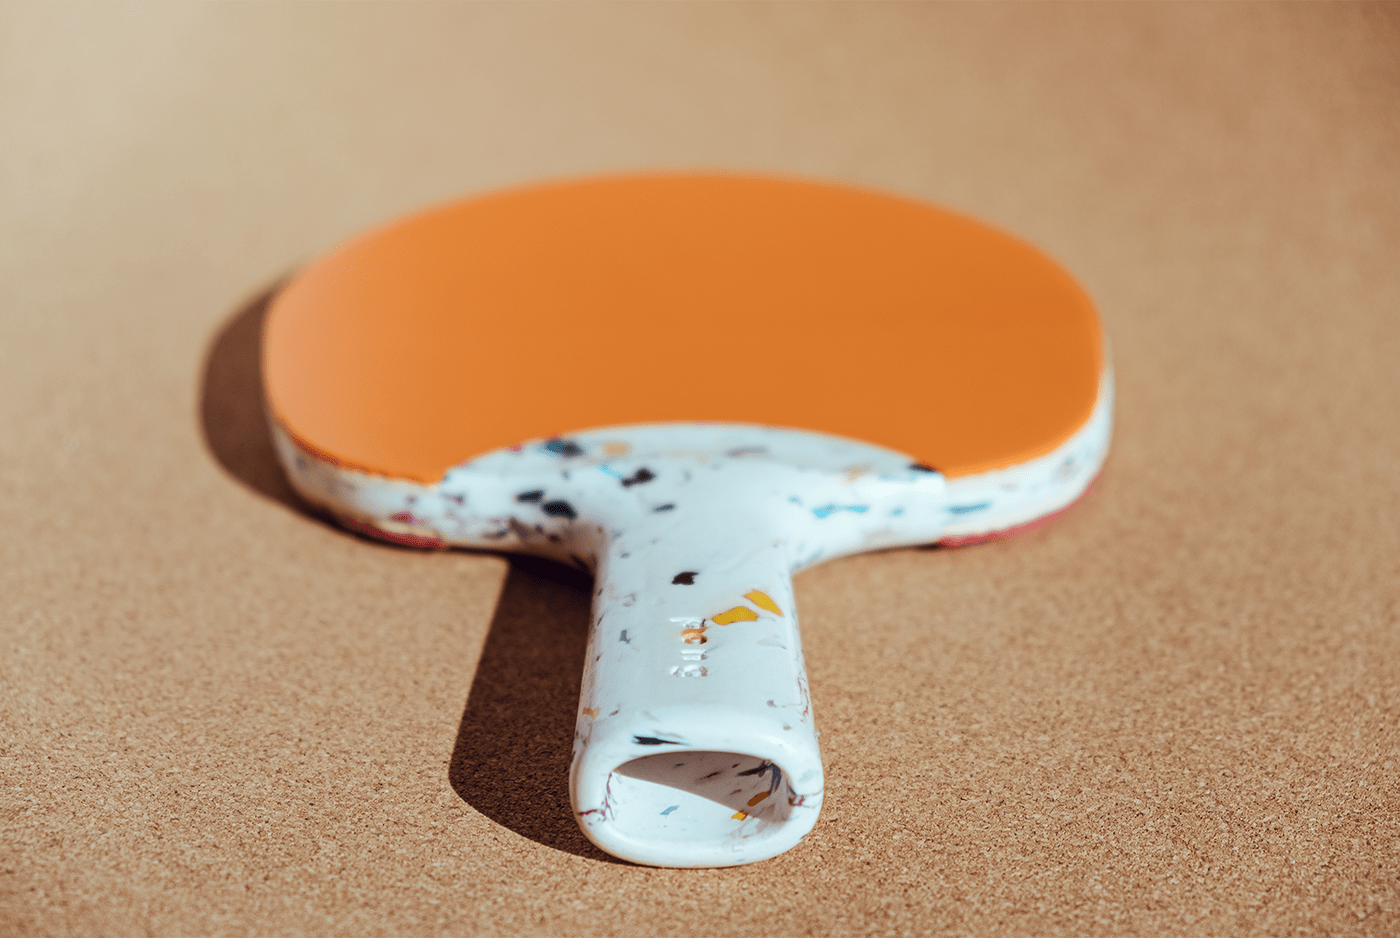 Recycled table tennis paddle